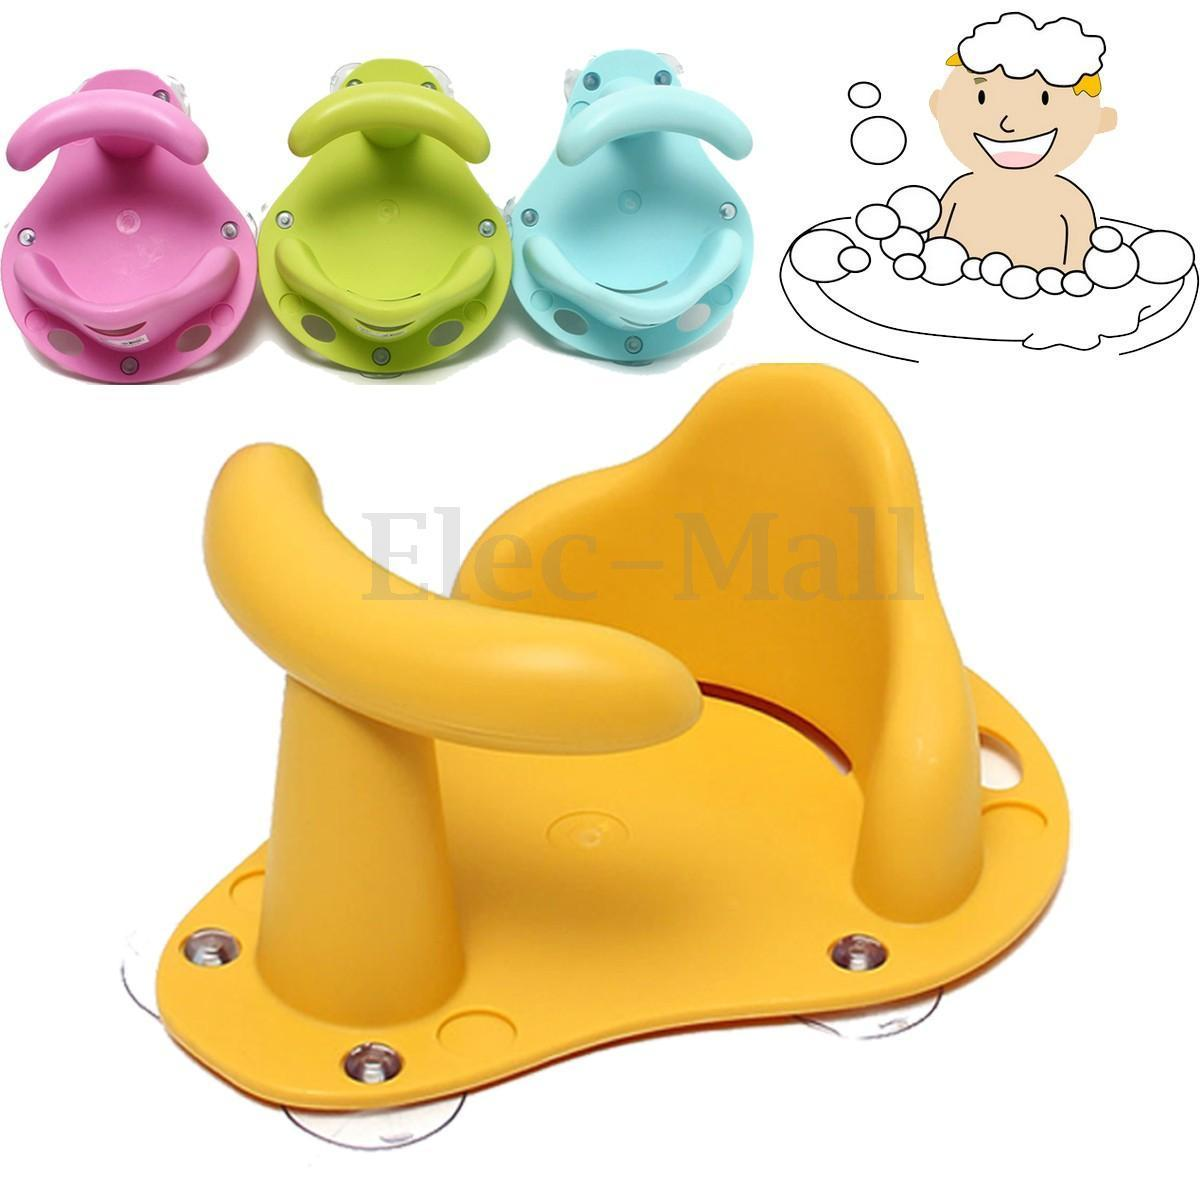 Baby Bath Seat Baby Bath Tub Ring Seat Infant Child Toddler Kids Anti Slip Safety Chair For 6 Month, Blue